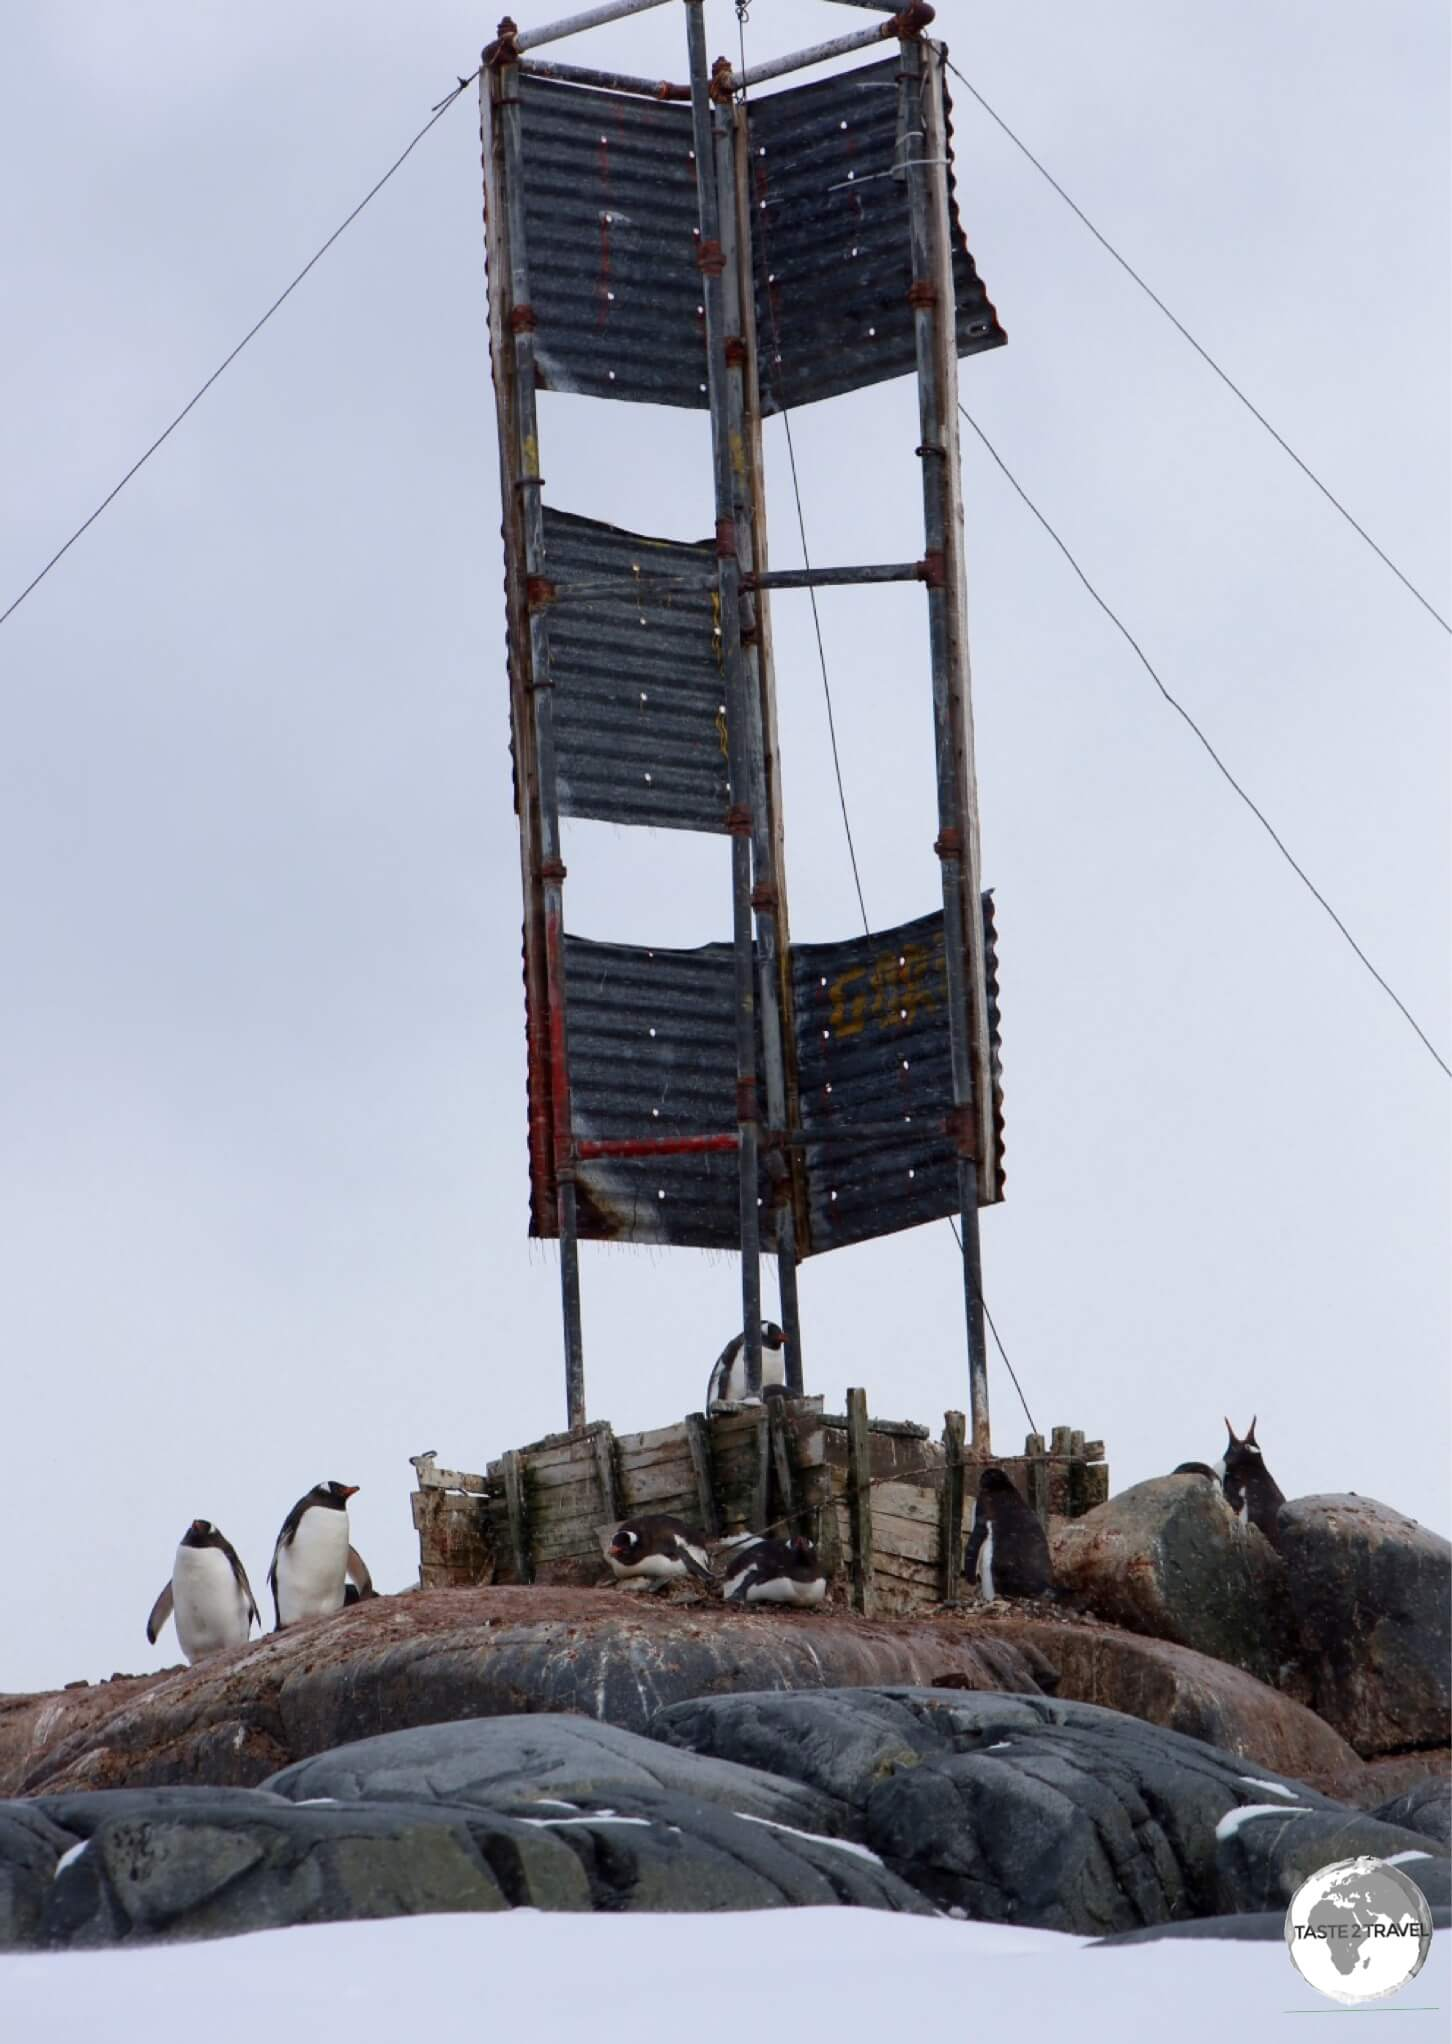 Gentoo penguins have established a small breeding colony around a marker on a rocky island offshore from Damoy point.